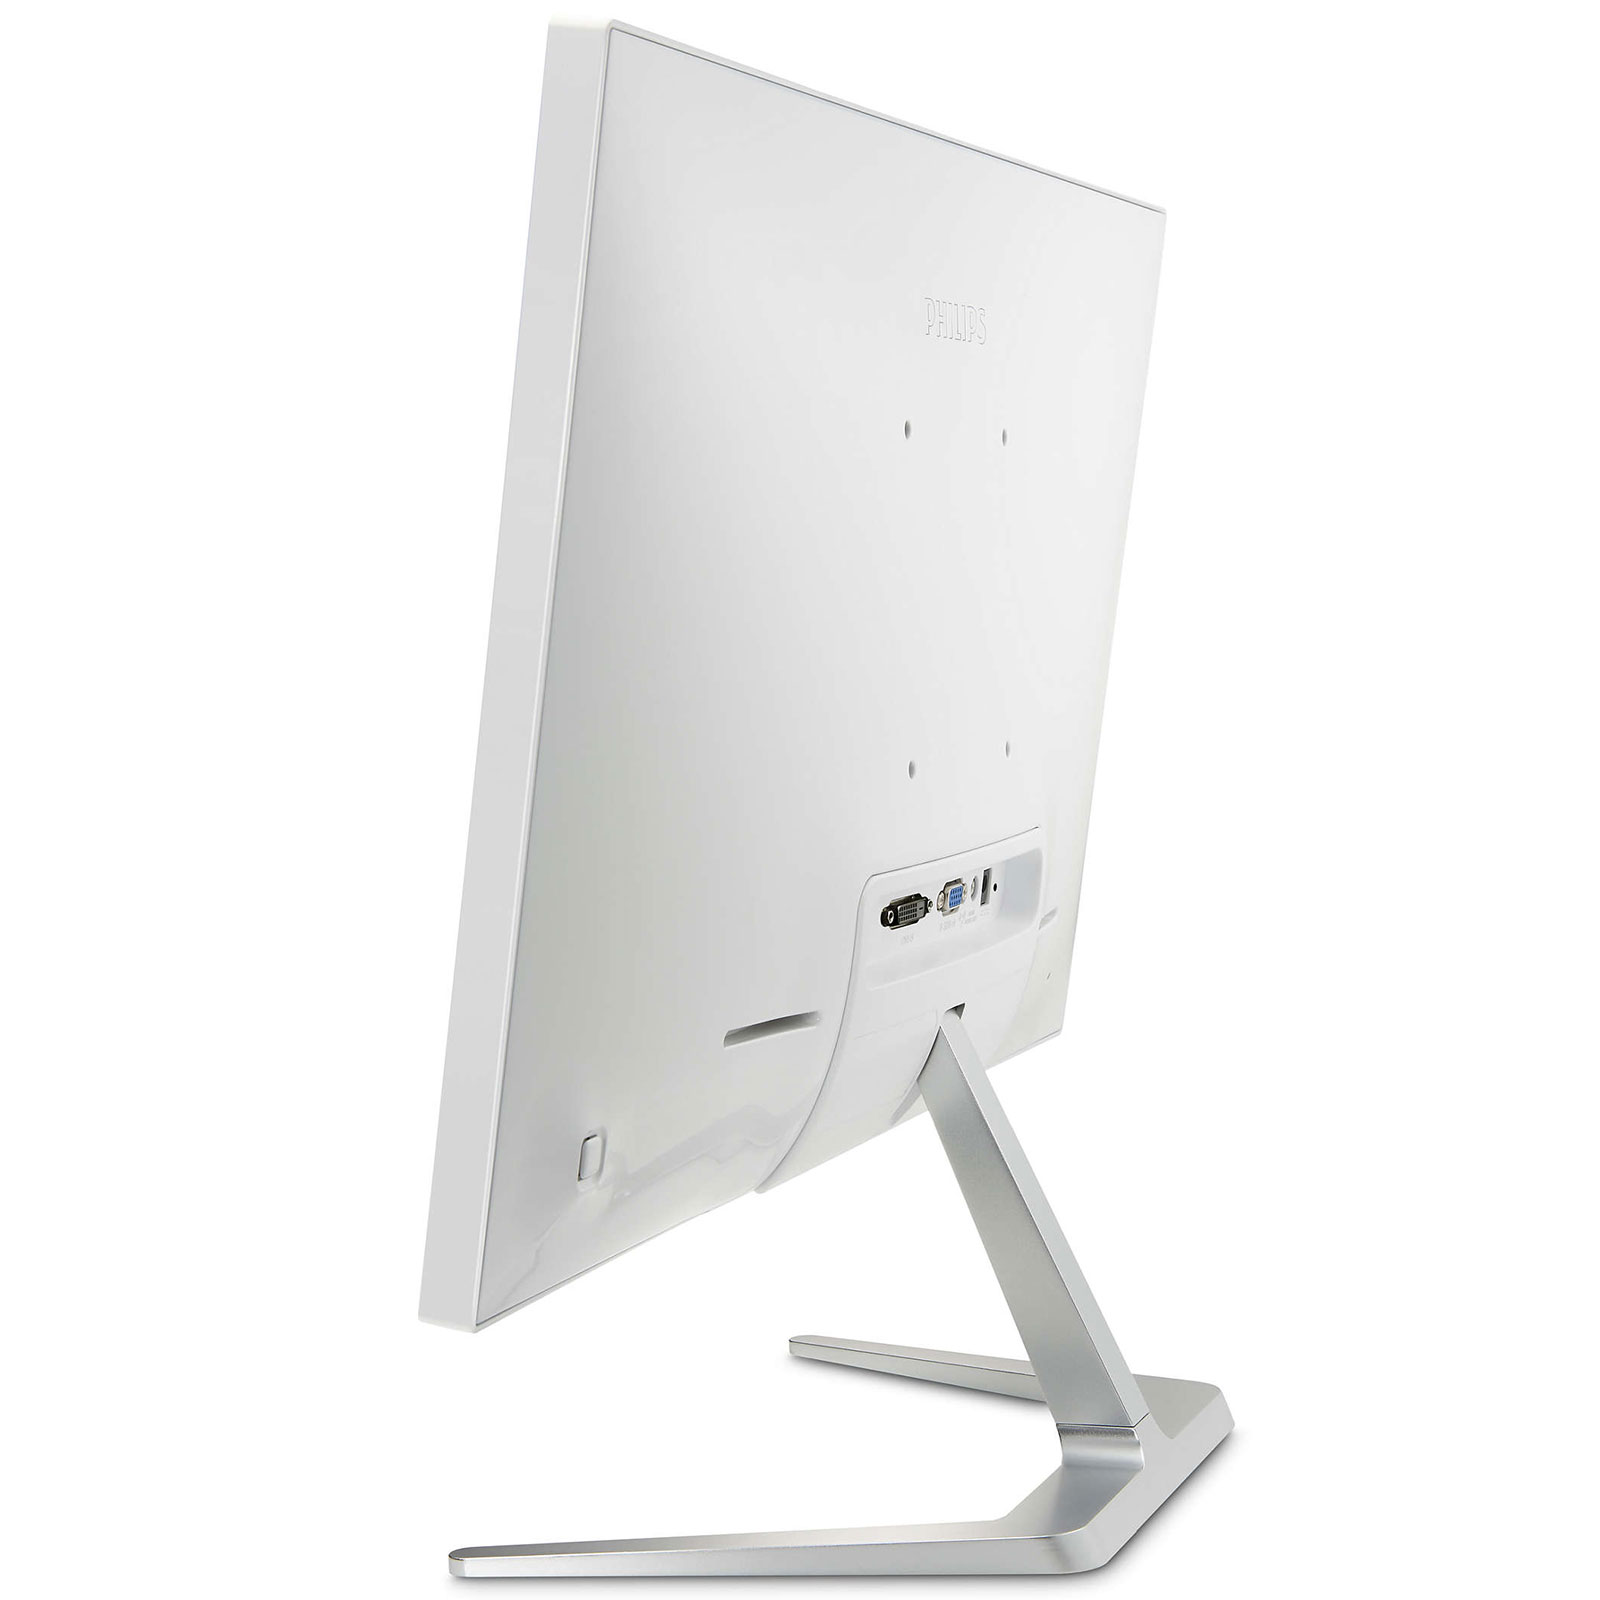 Philips 23 6 Led 246e7qdsw Ecran Pc Philips Sur